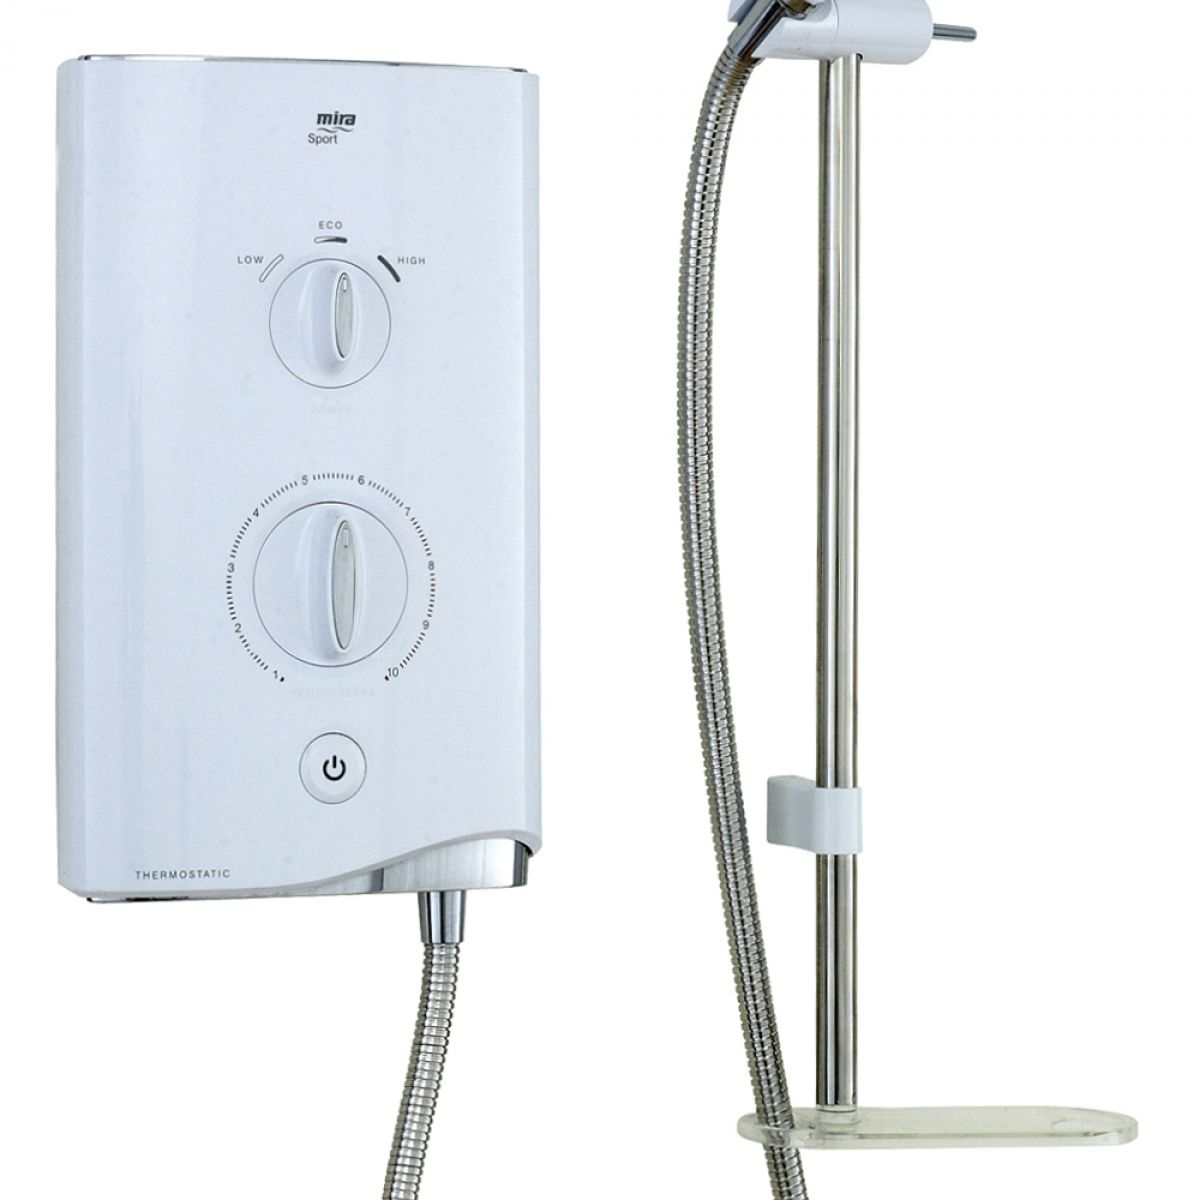 Kitchen Ideas White Cabinets Mira Sport Thermostatic Electric Shower Uk Bathrooms